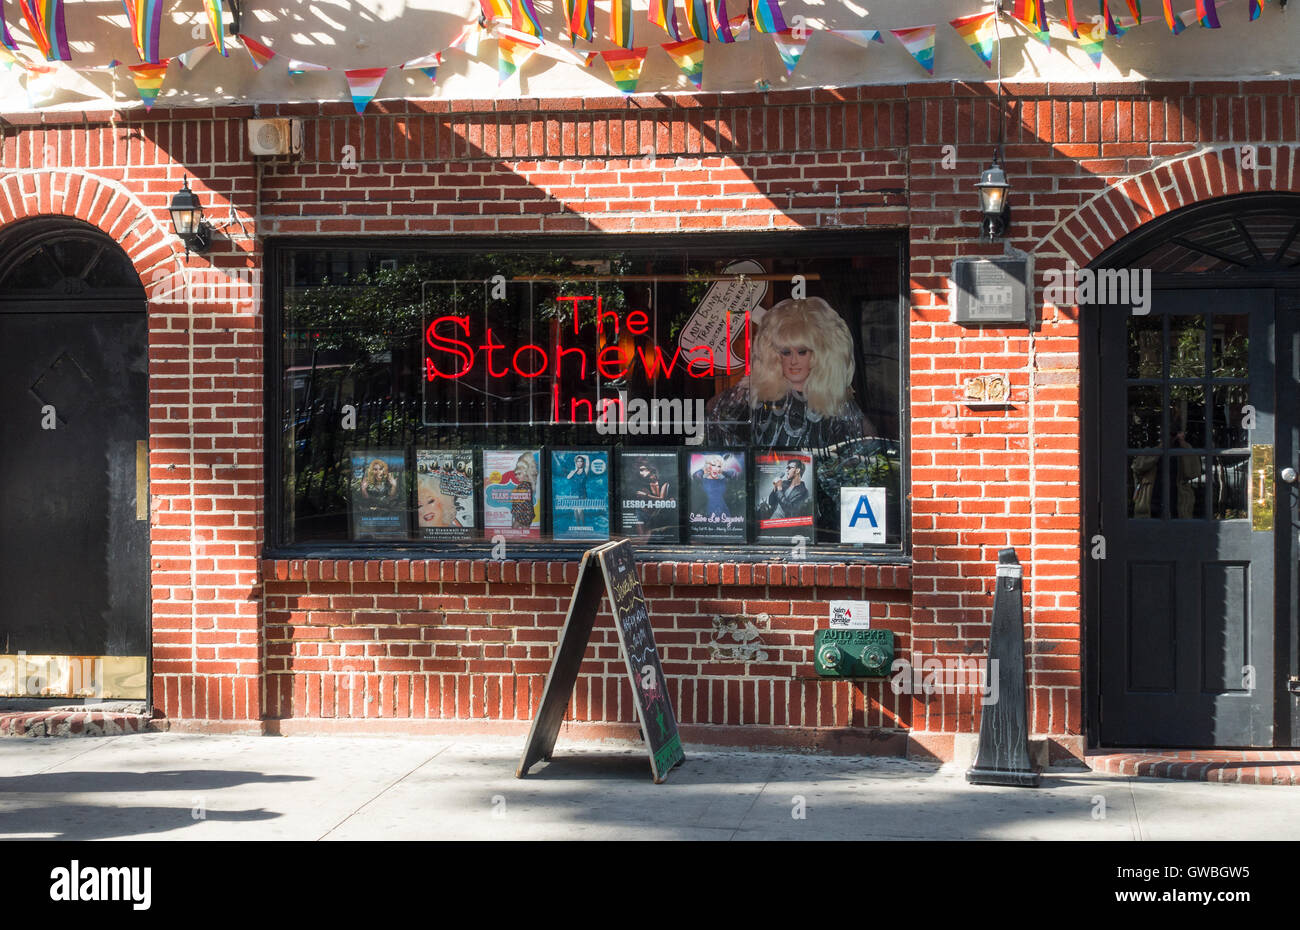 the-stonewall-inn-a-famous-gay-bar-in-gr